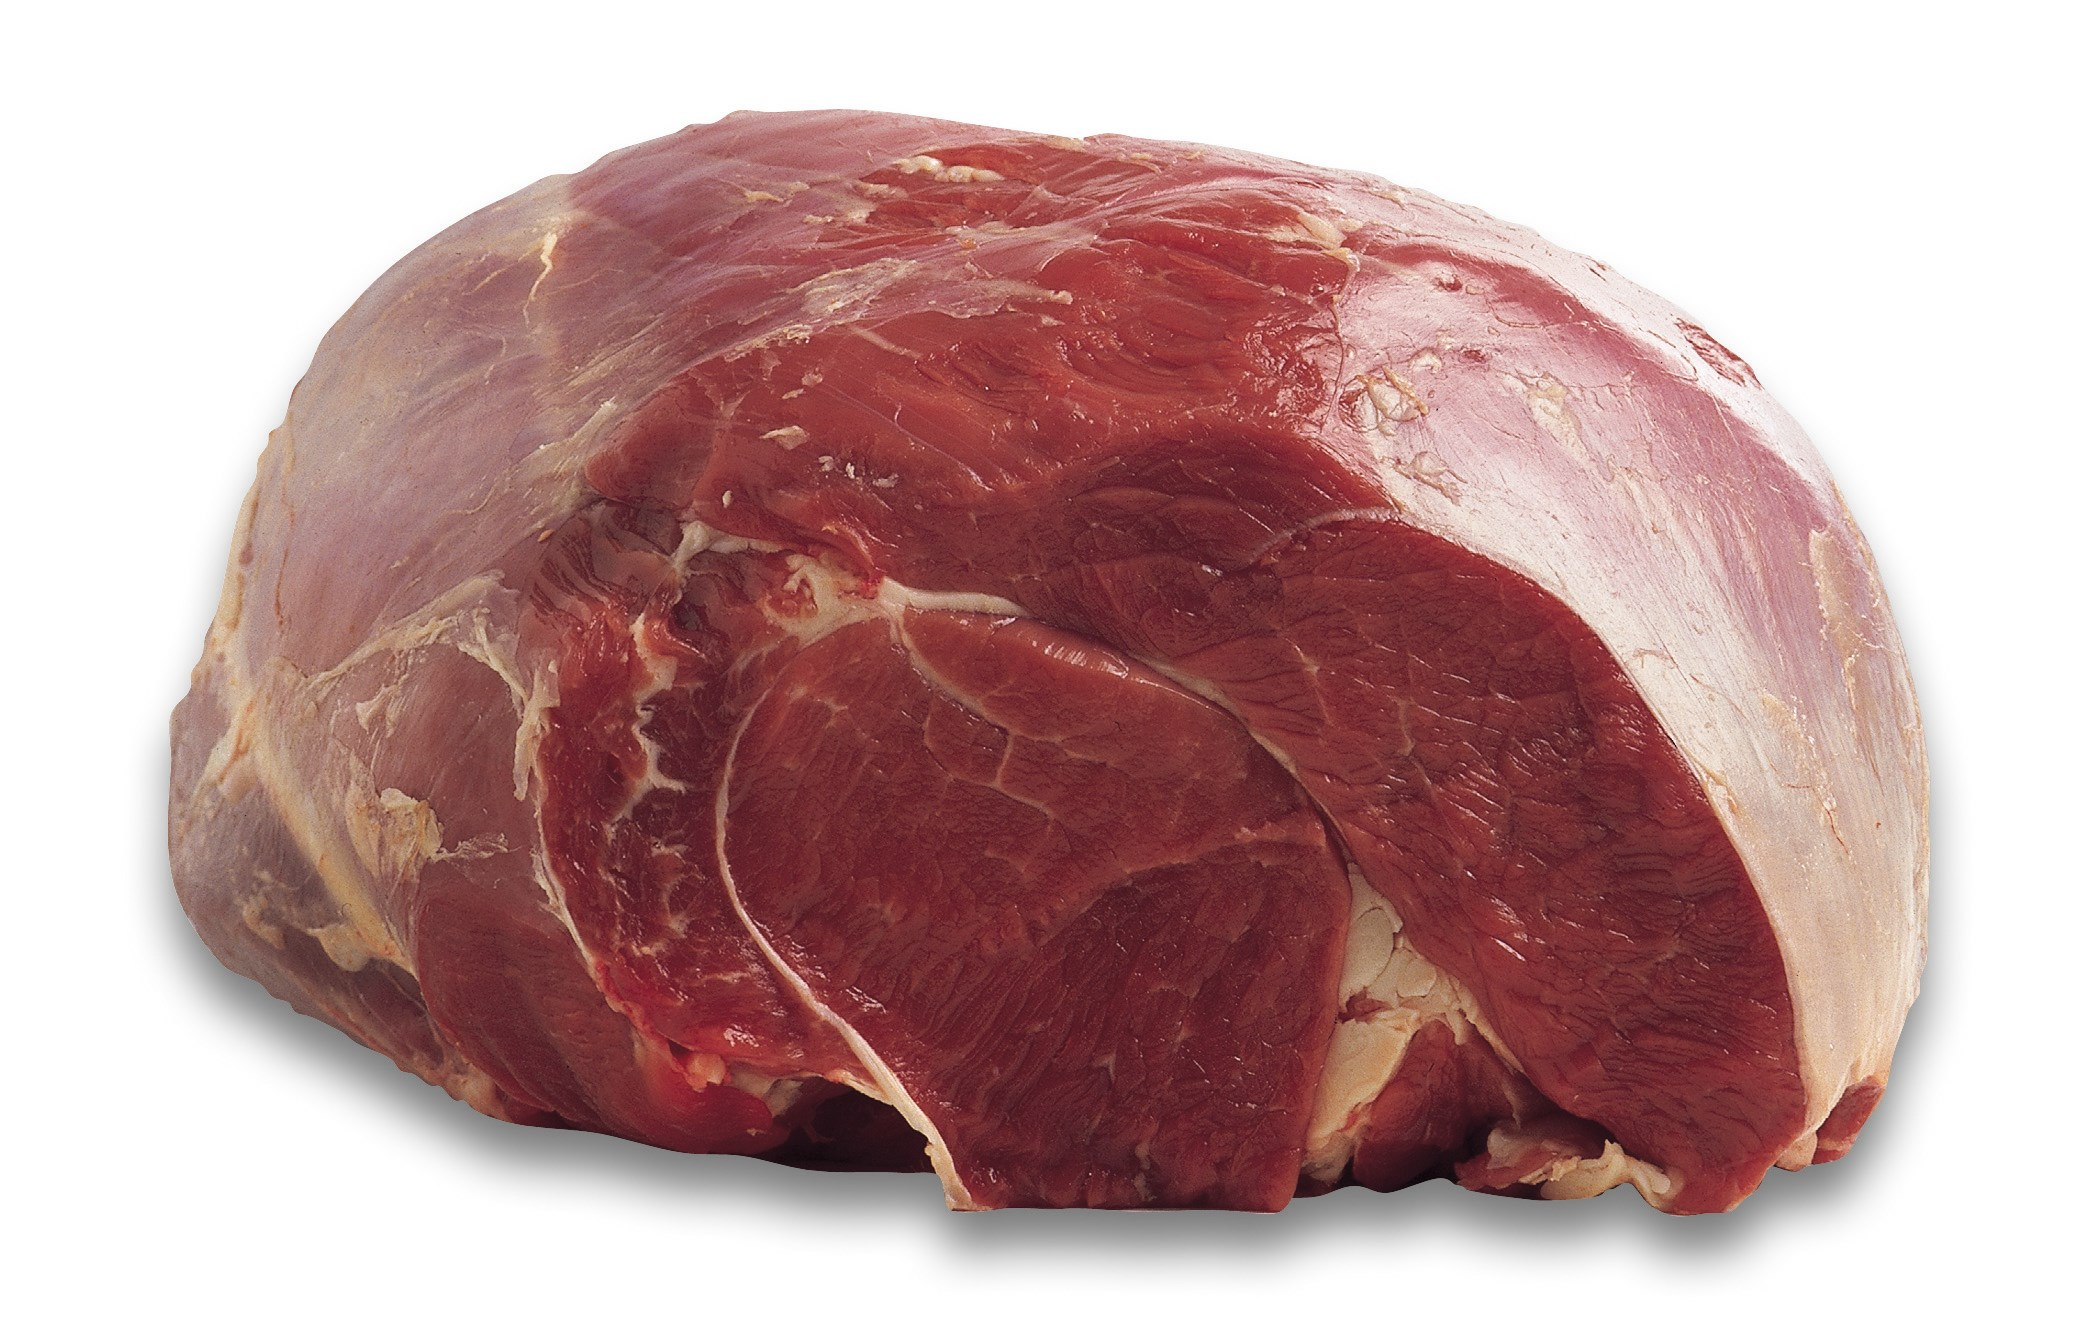 Knuckle - Thick flank beef